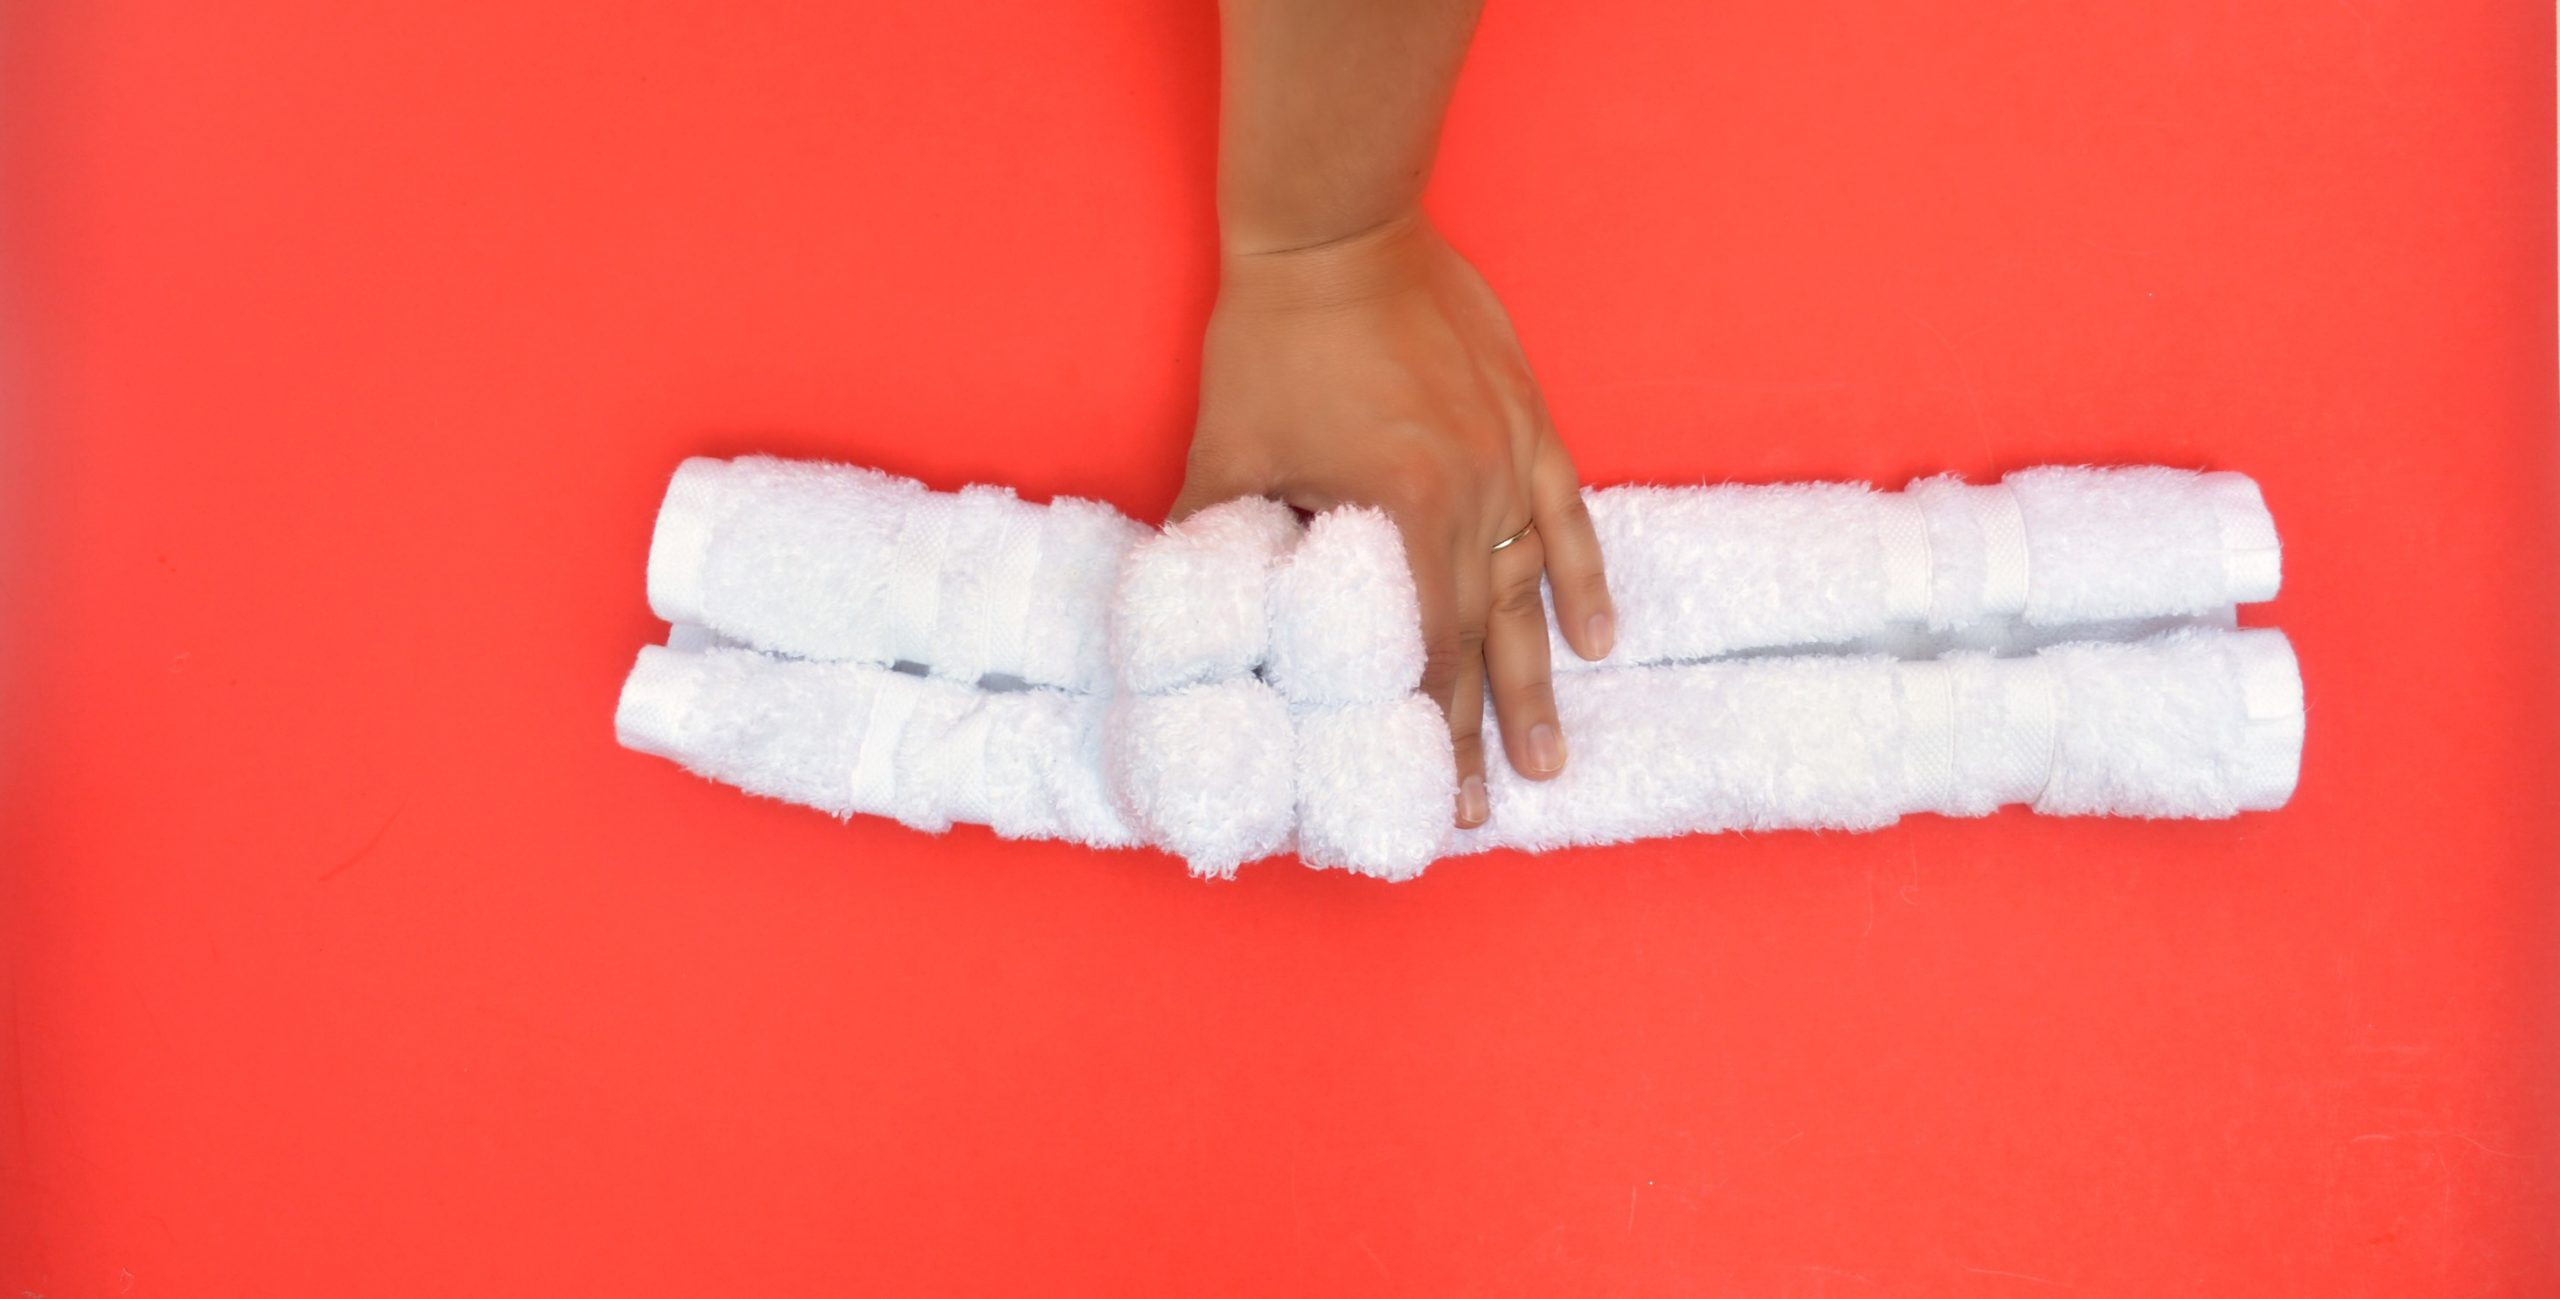 hand folding a towel on a red background